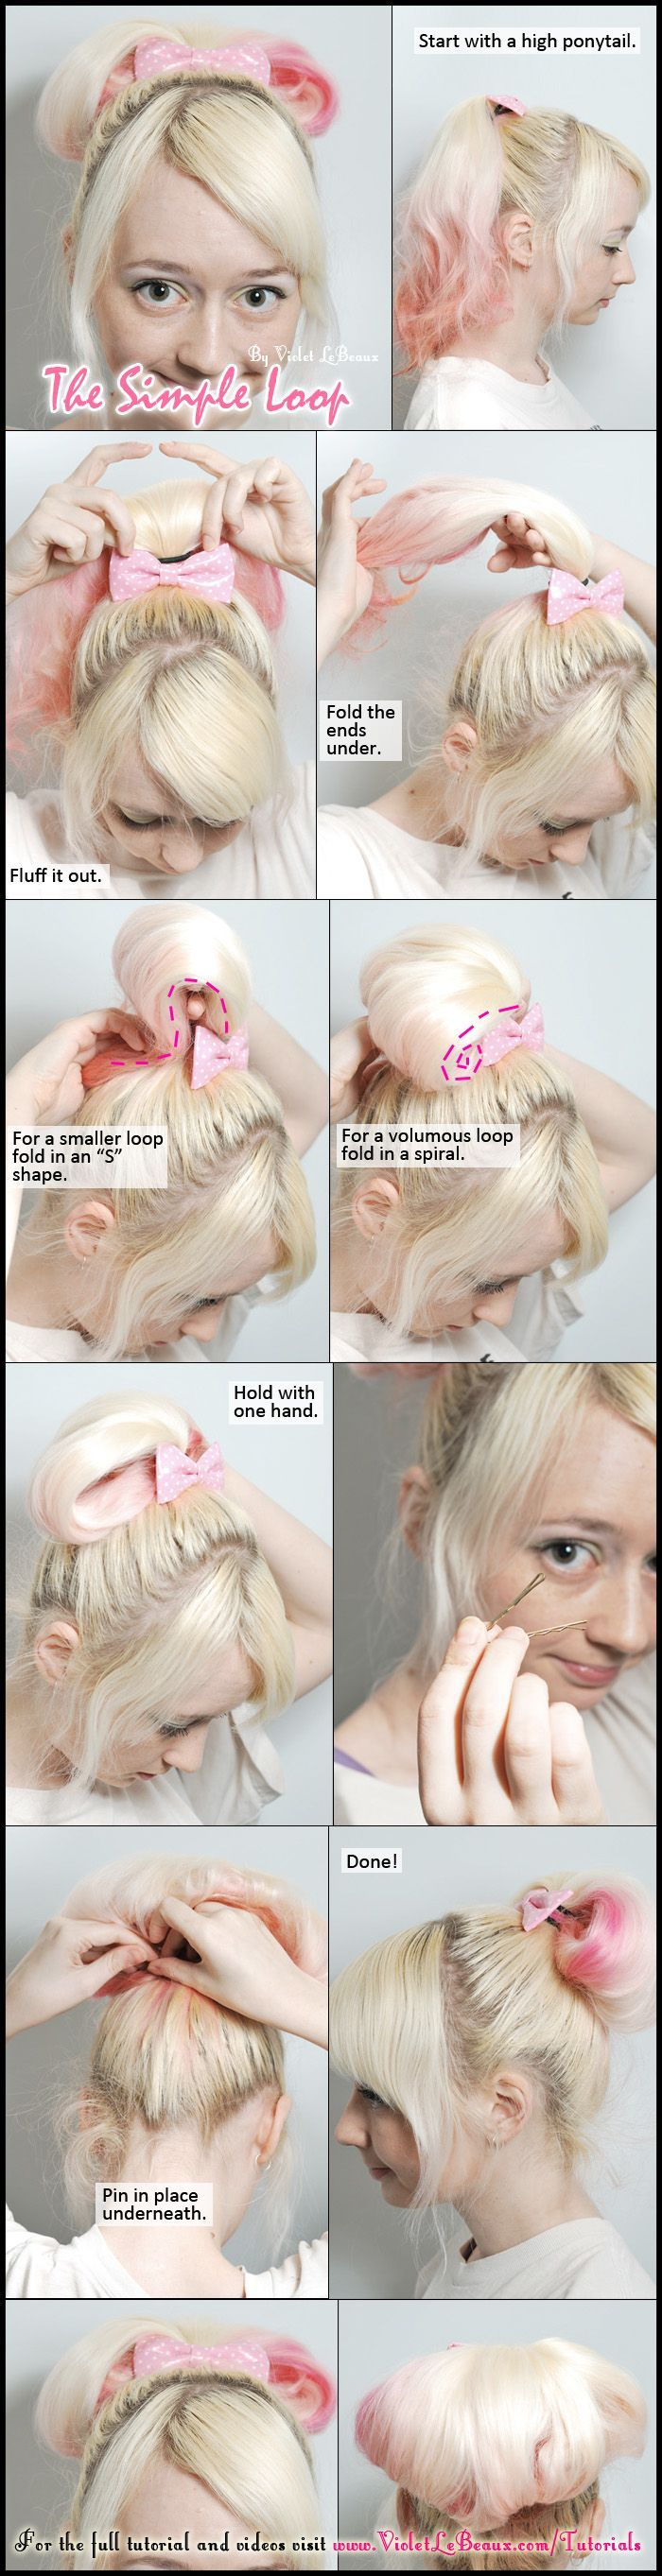 Simple tutorial for a very simple lazy day cute hair style ^_^ Full original post over here with more information: violetlebeaux.com